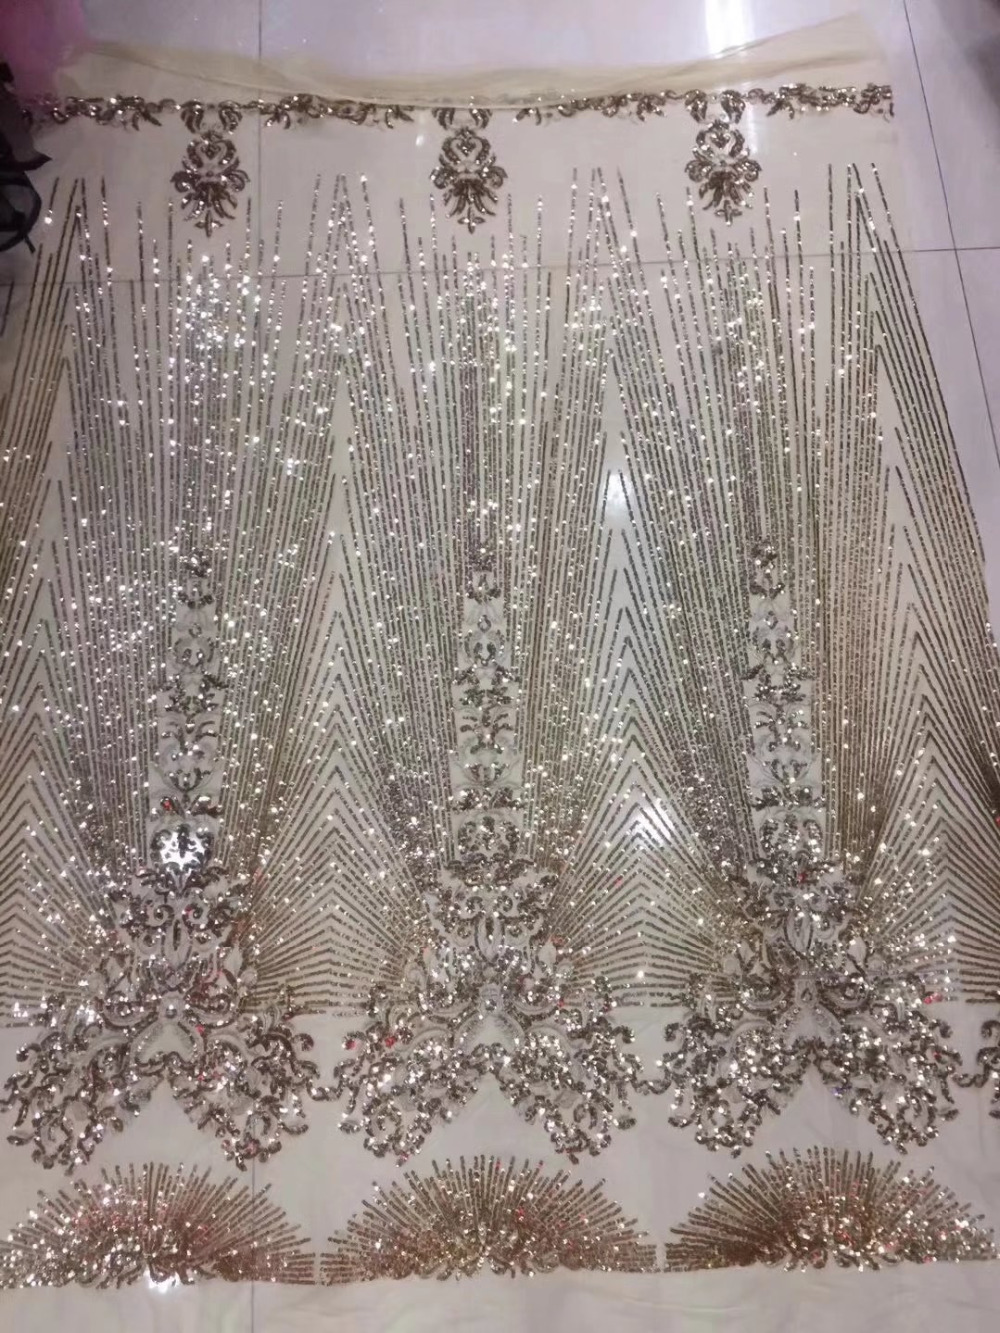 Free shipping (5yards/pc) fashion design French net lace fabric gold sequins embroidery lace fabric for shining dress FL3902Free shipping (5yards/pc) fashion design French net lace fabric gold sequins embroidery lace fabric for shining dress FL3902